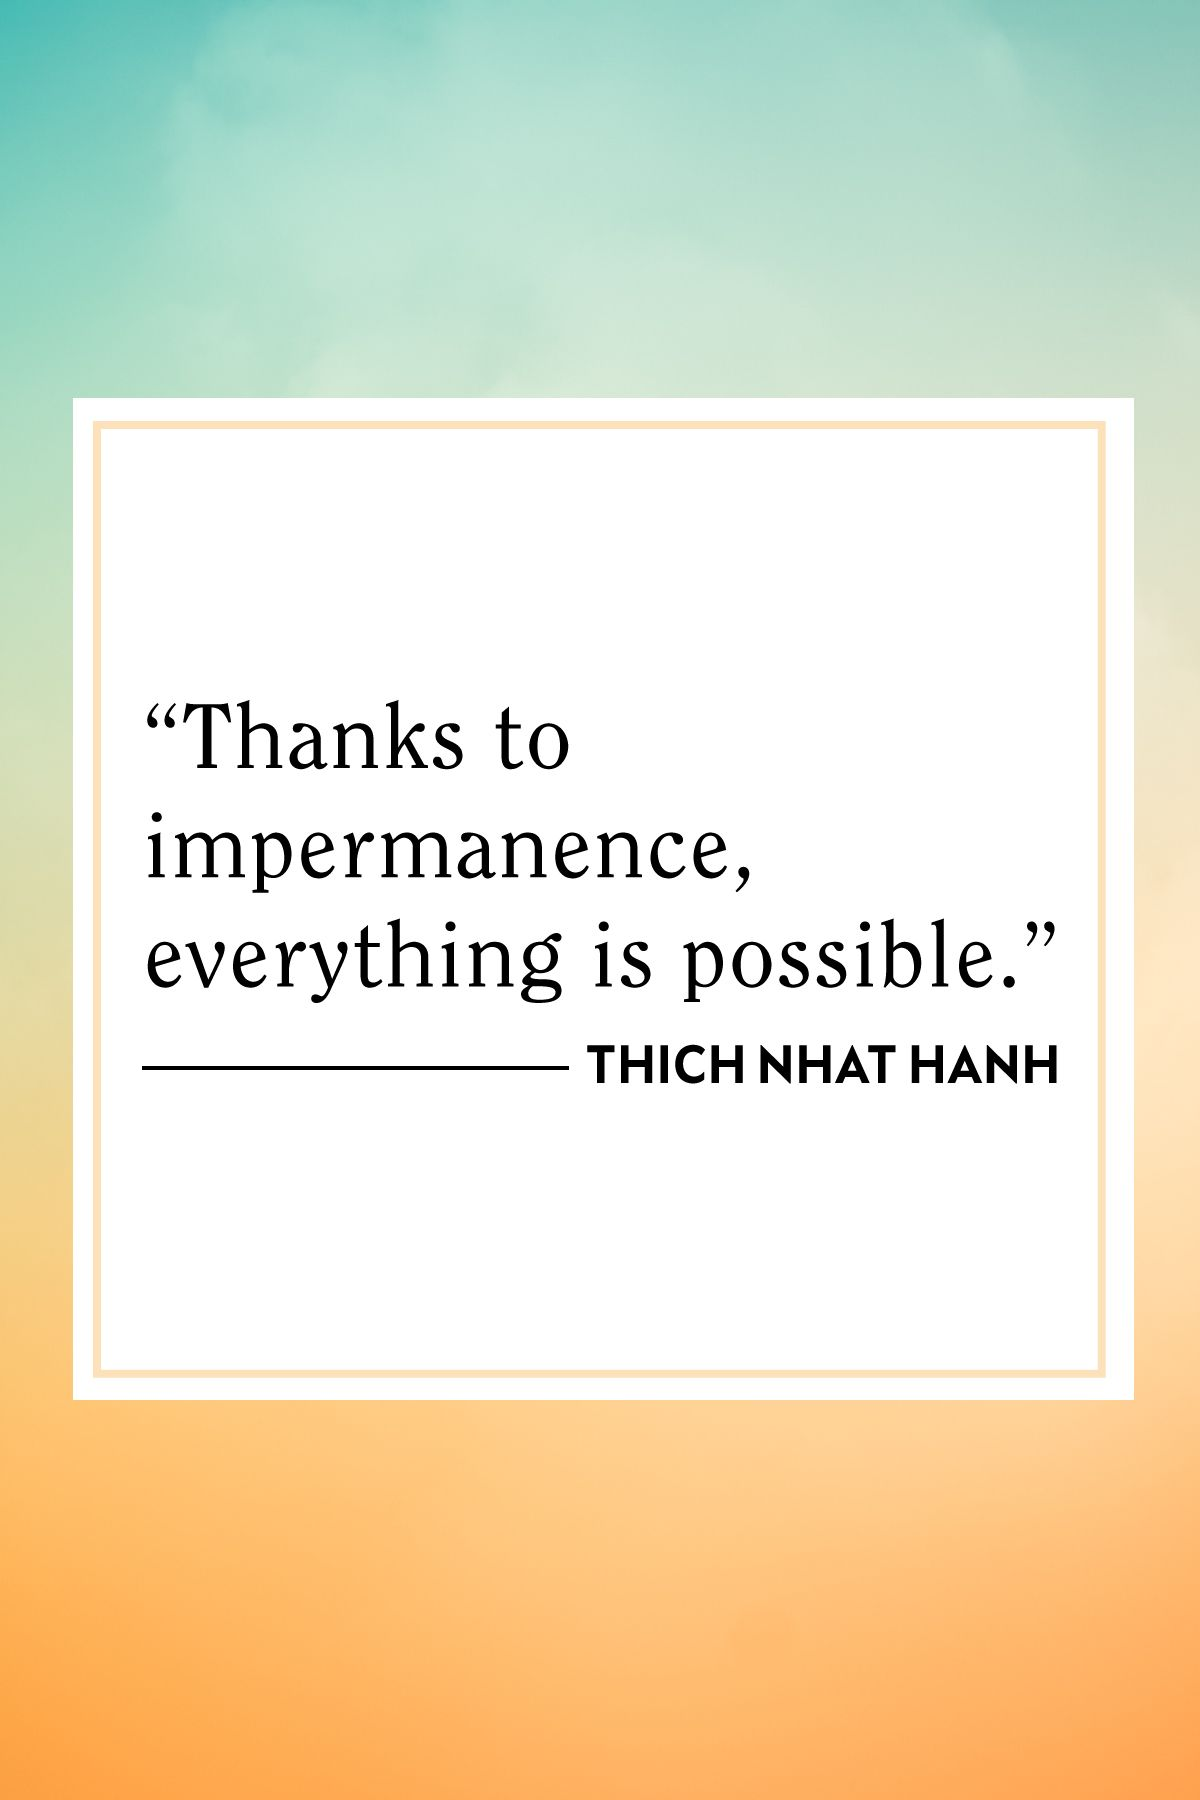 50 Inspiring Thich Nhat Hanh Quotes on Love, Mindfulness, and Peace